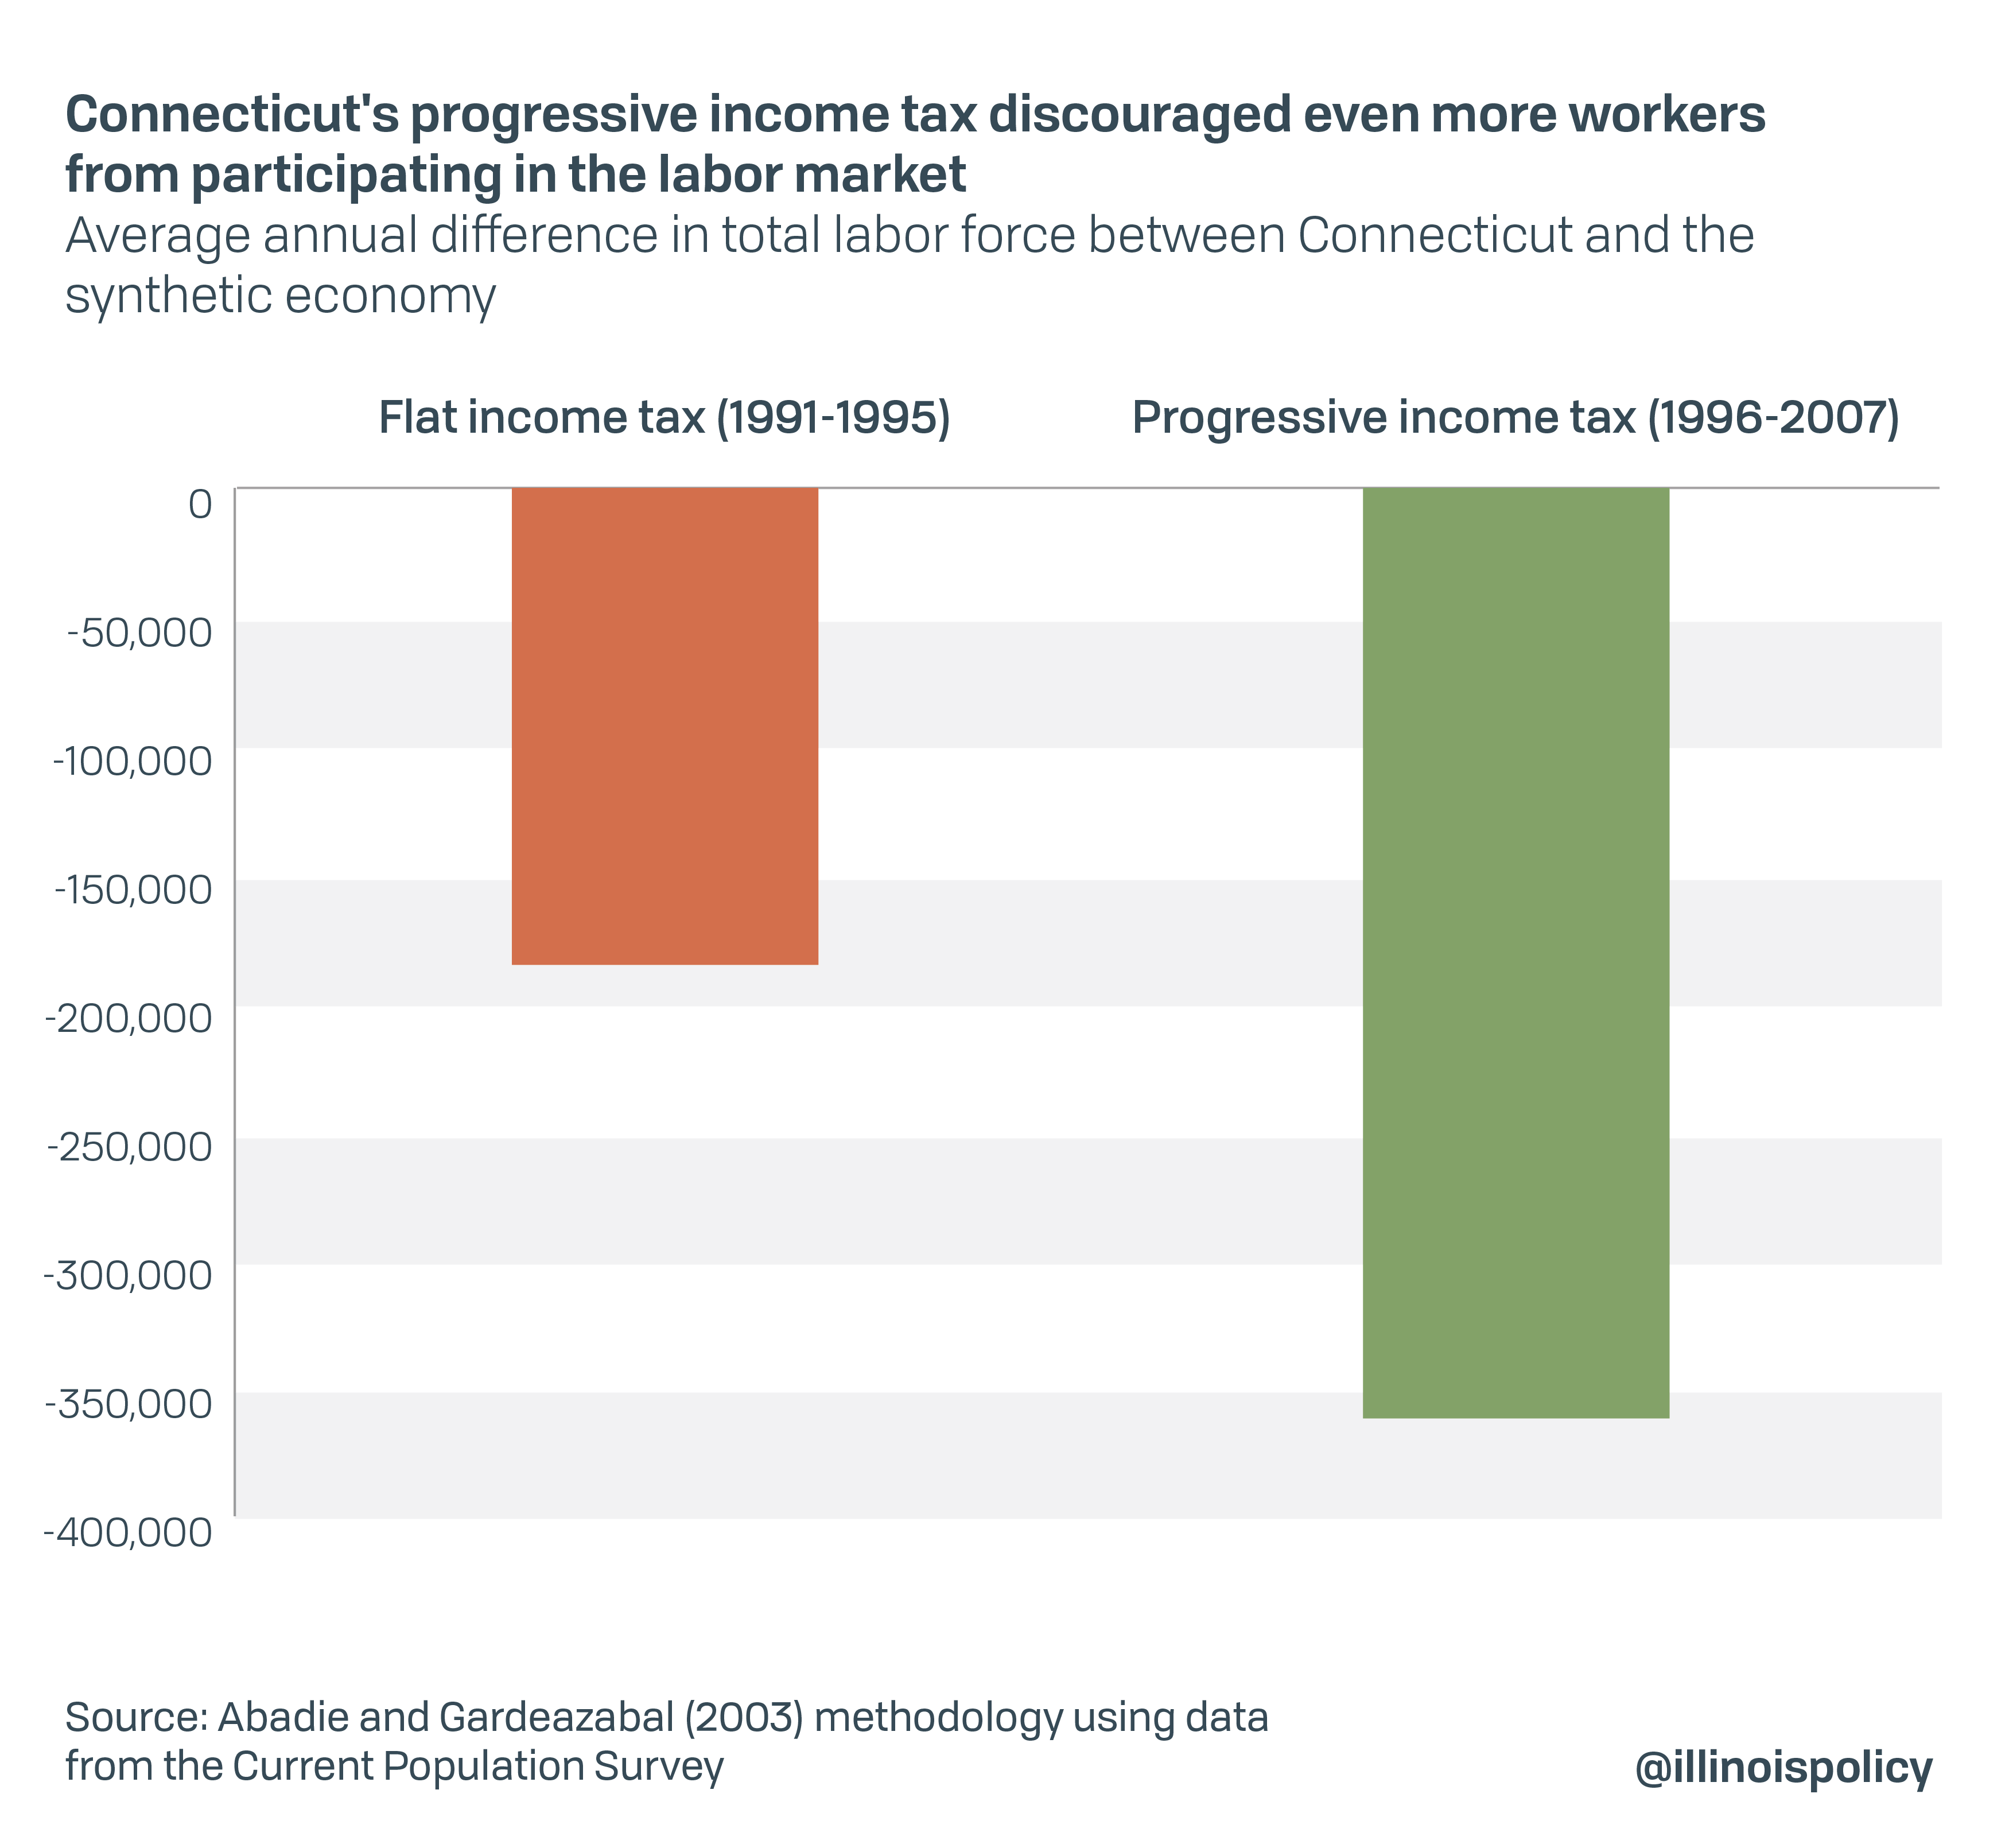 Connecticut's progressive income tax discouraged even more workers from participating in the labor market